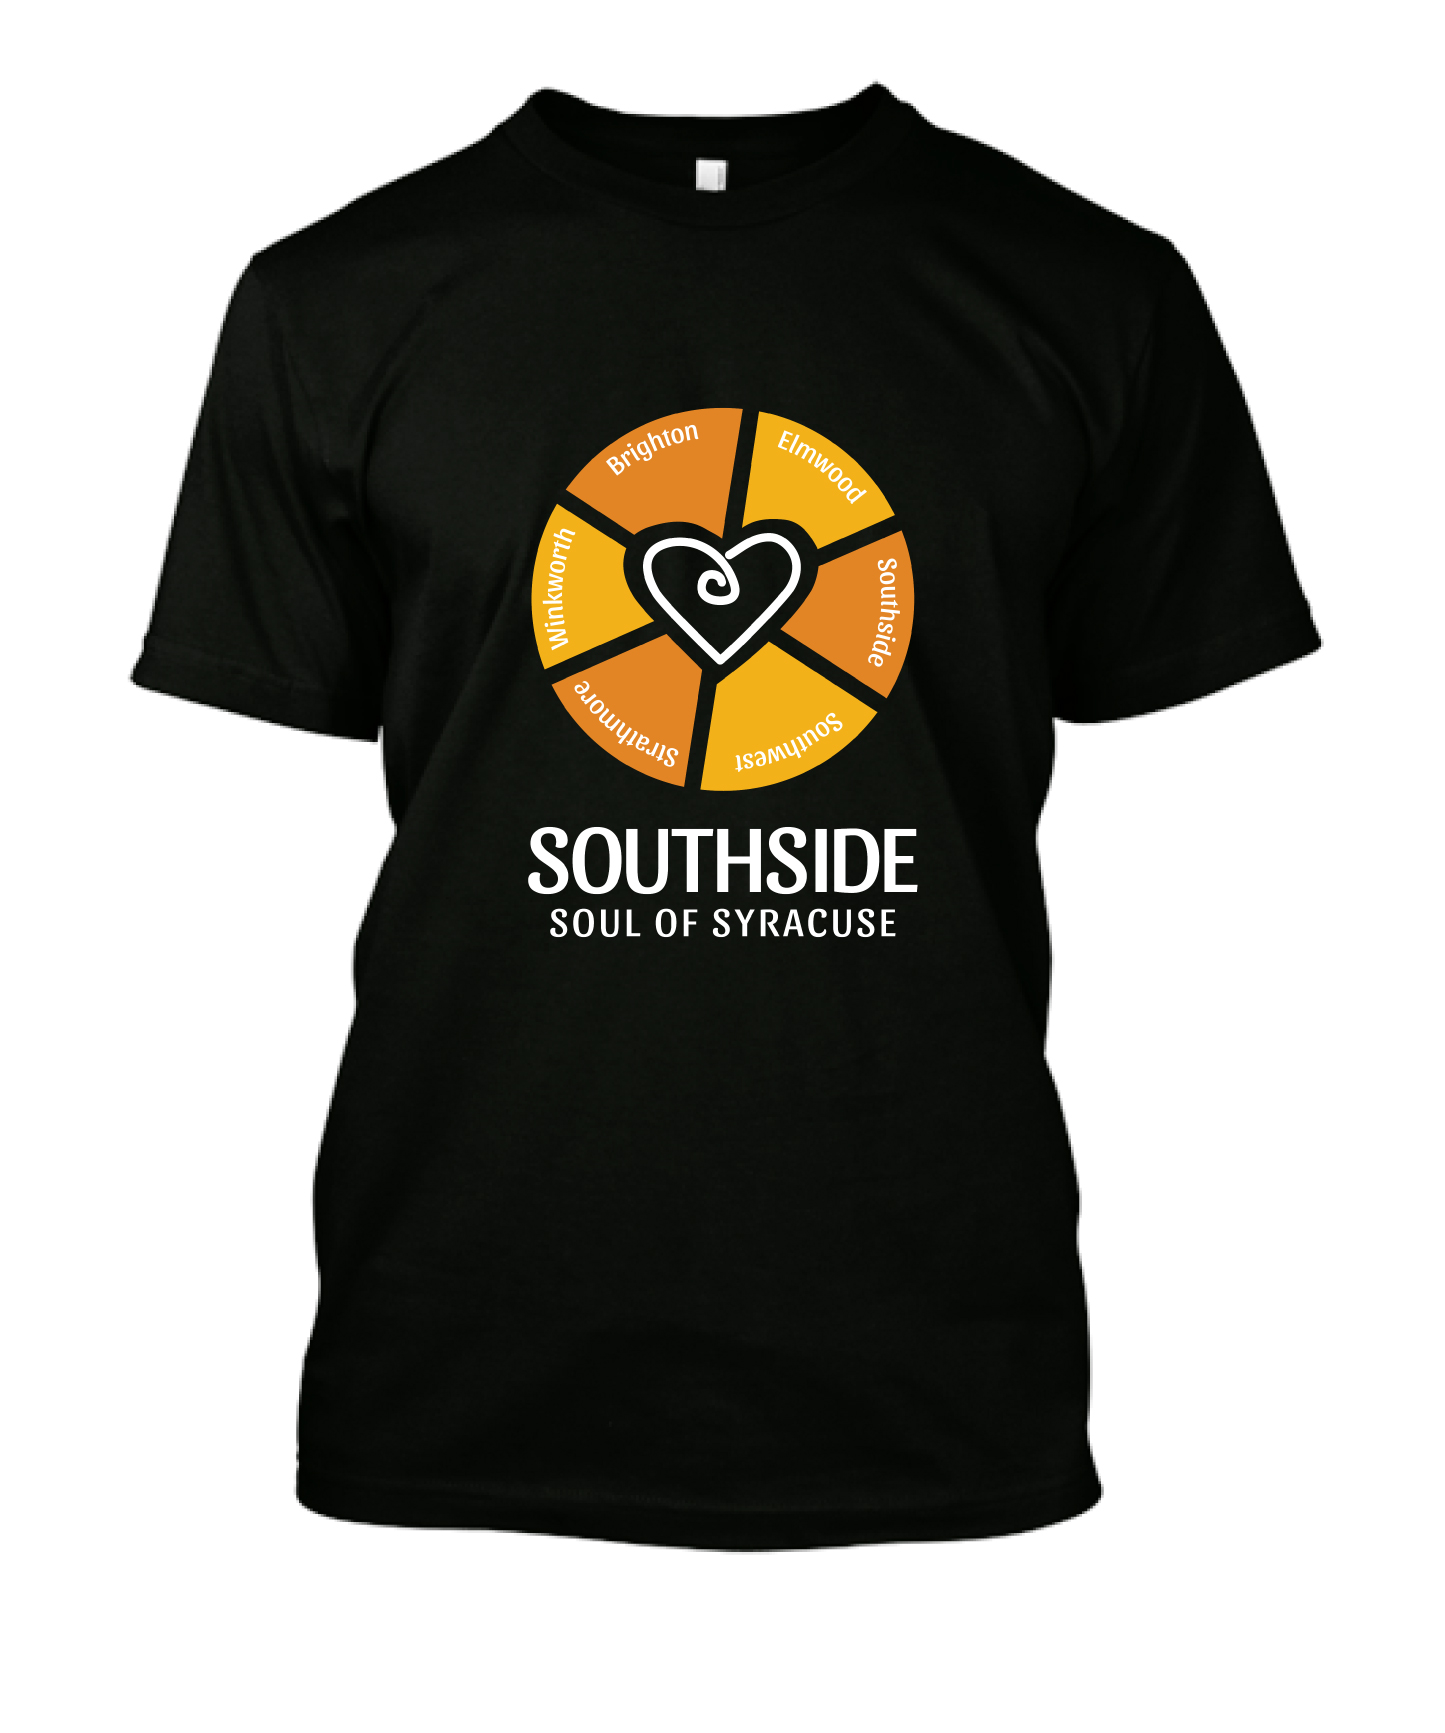 2017 Southside TNT T-shirts